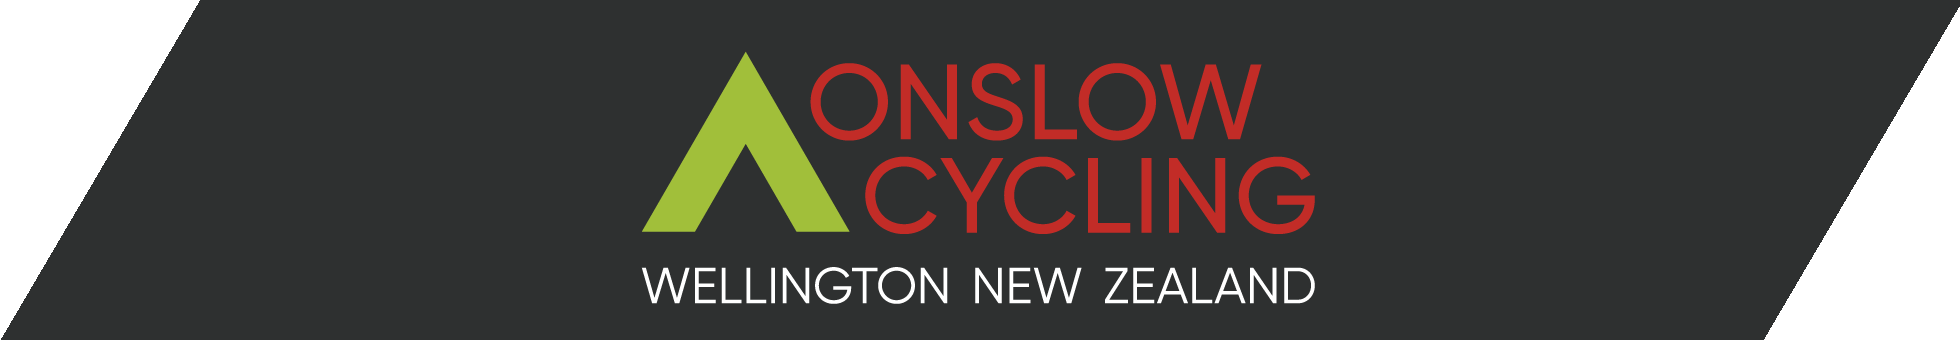 Onslow Cycling, Wellington New Zealand